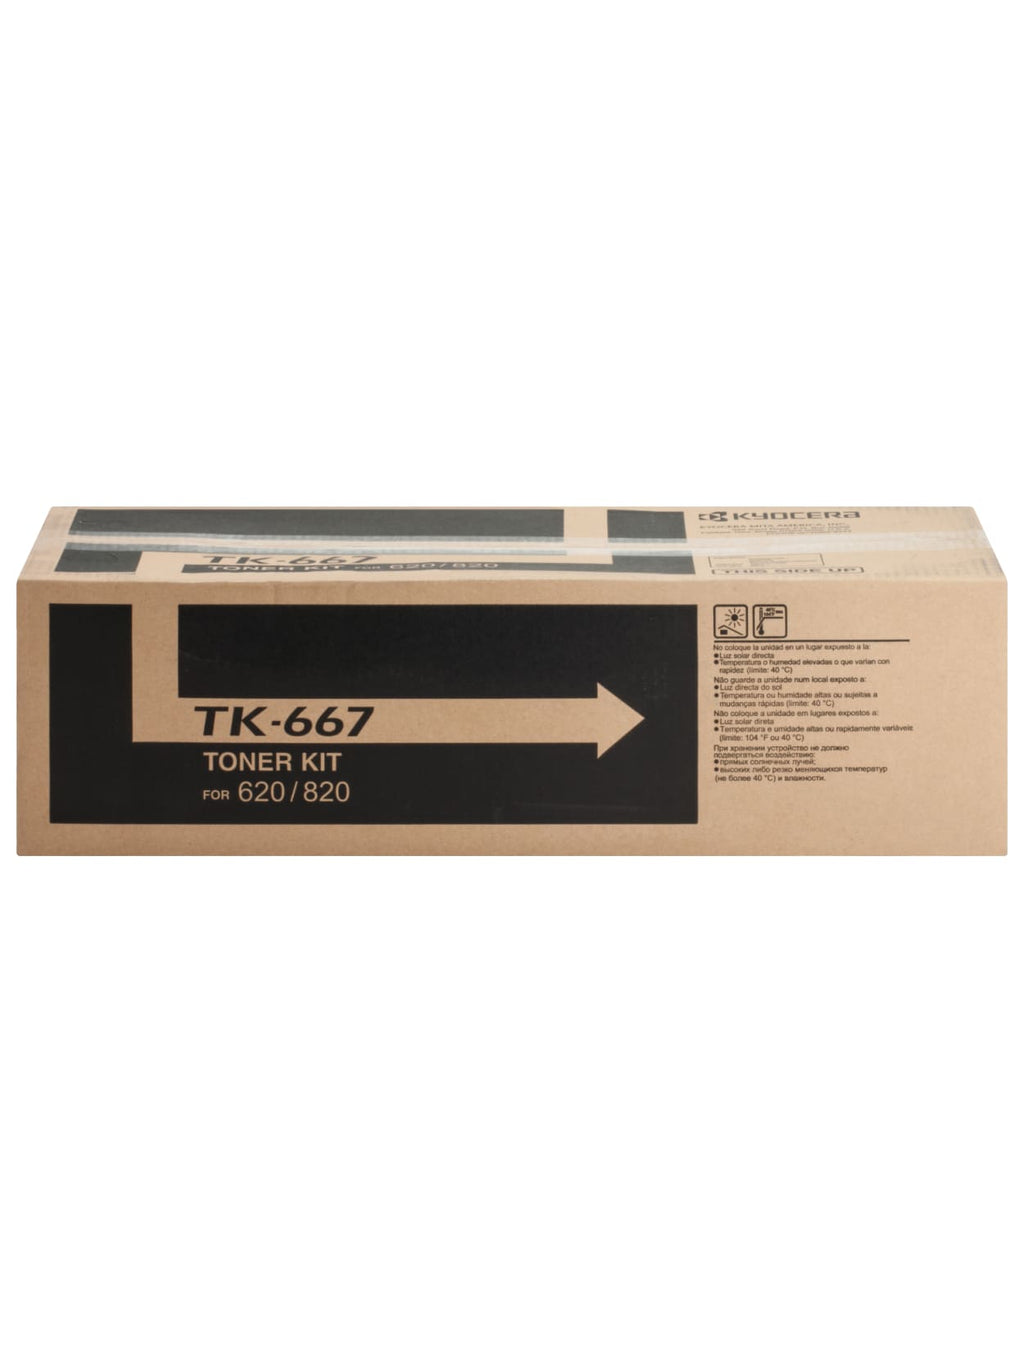 Kyocera-Mita TK667 Black Laser Toner Cartridge (Genuine)